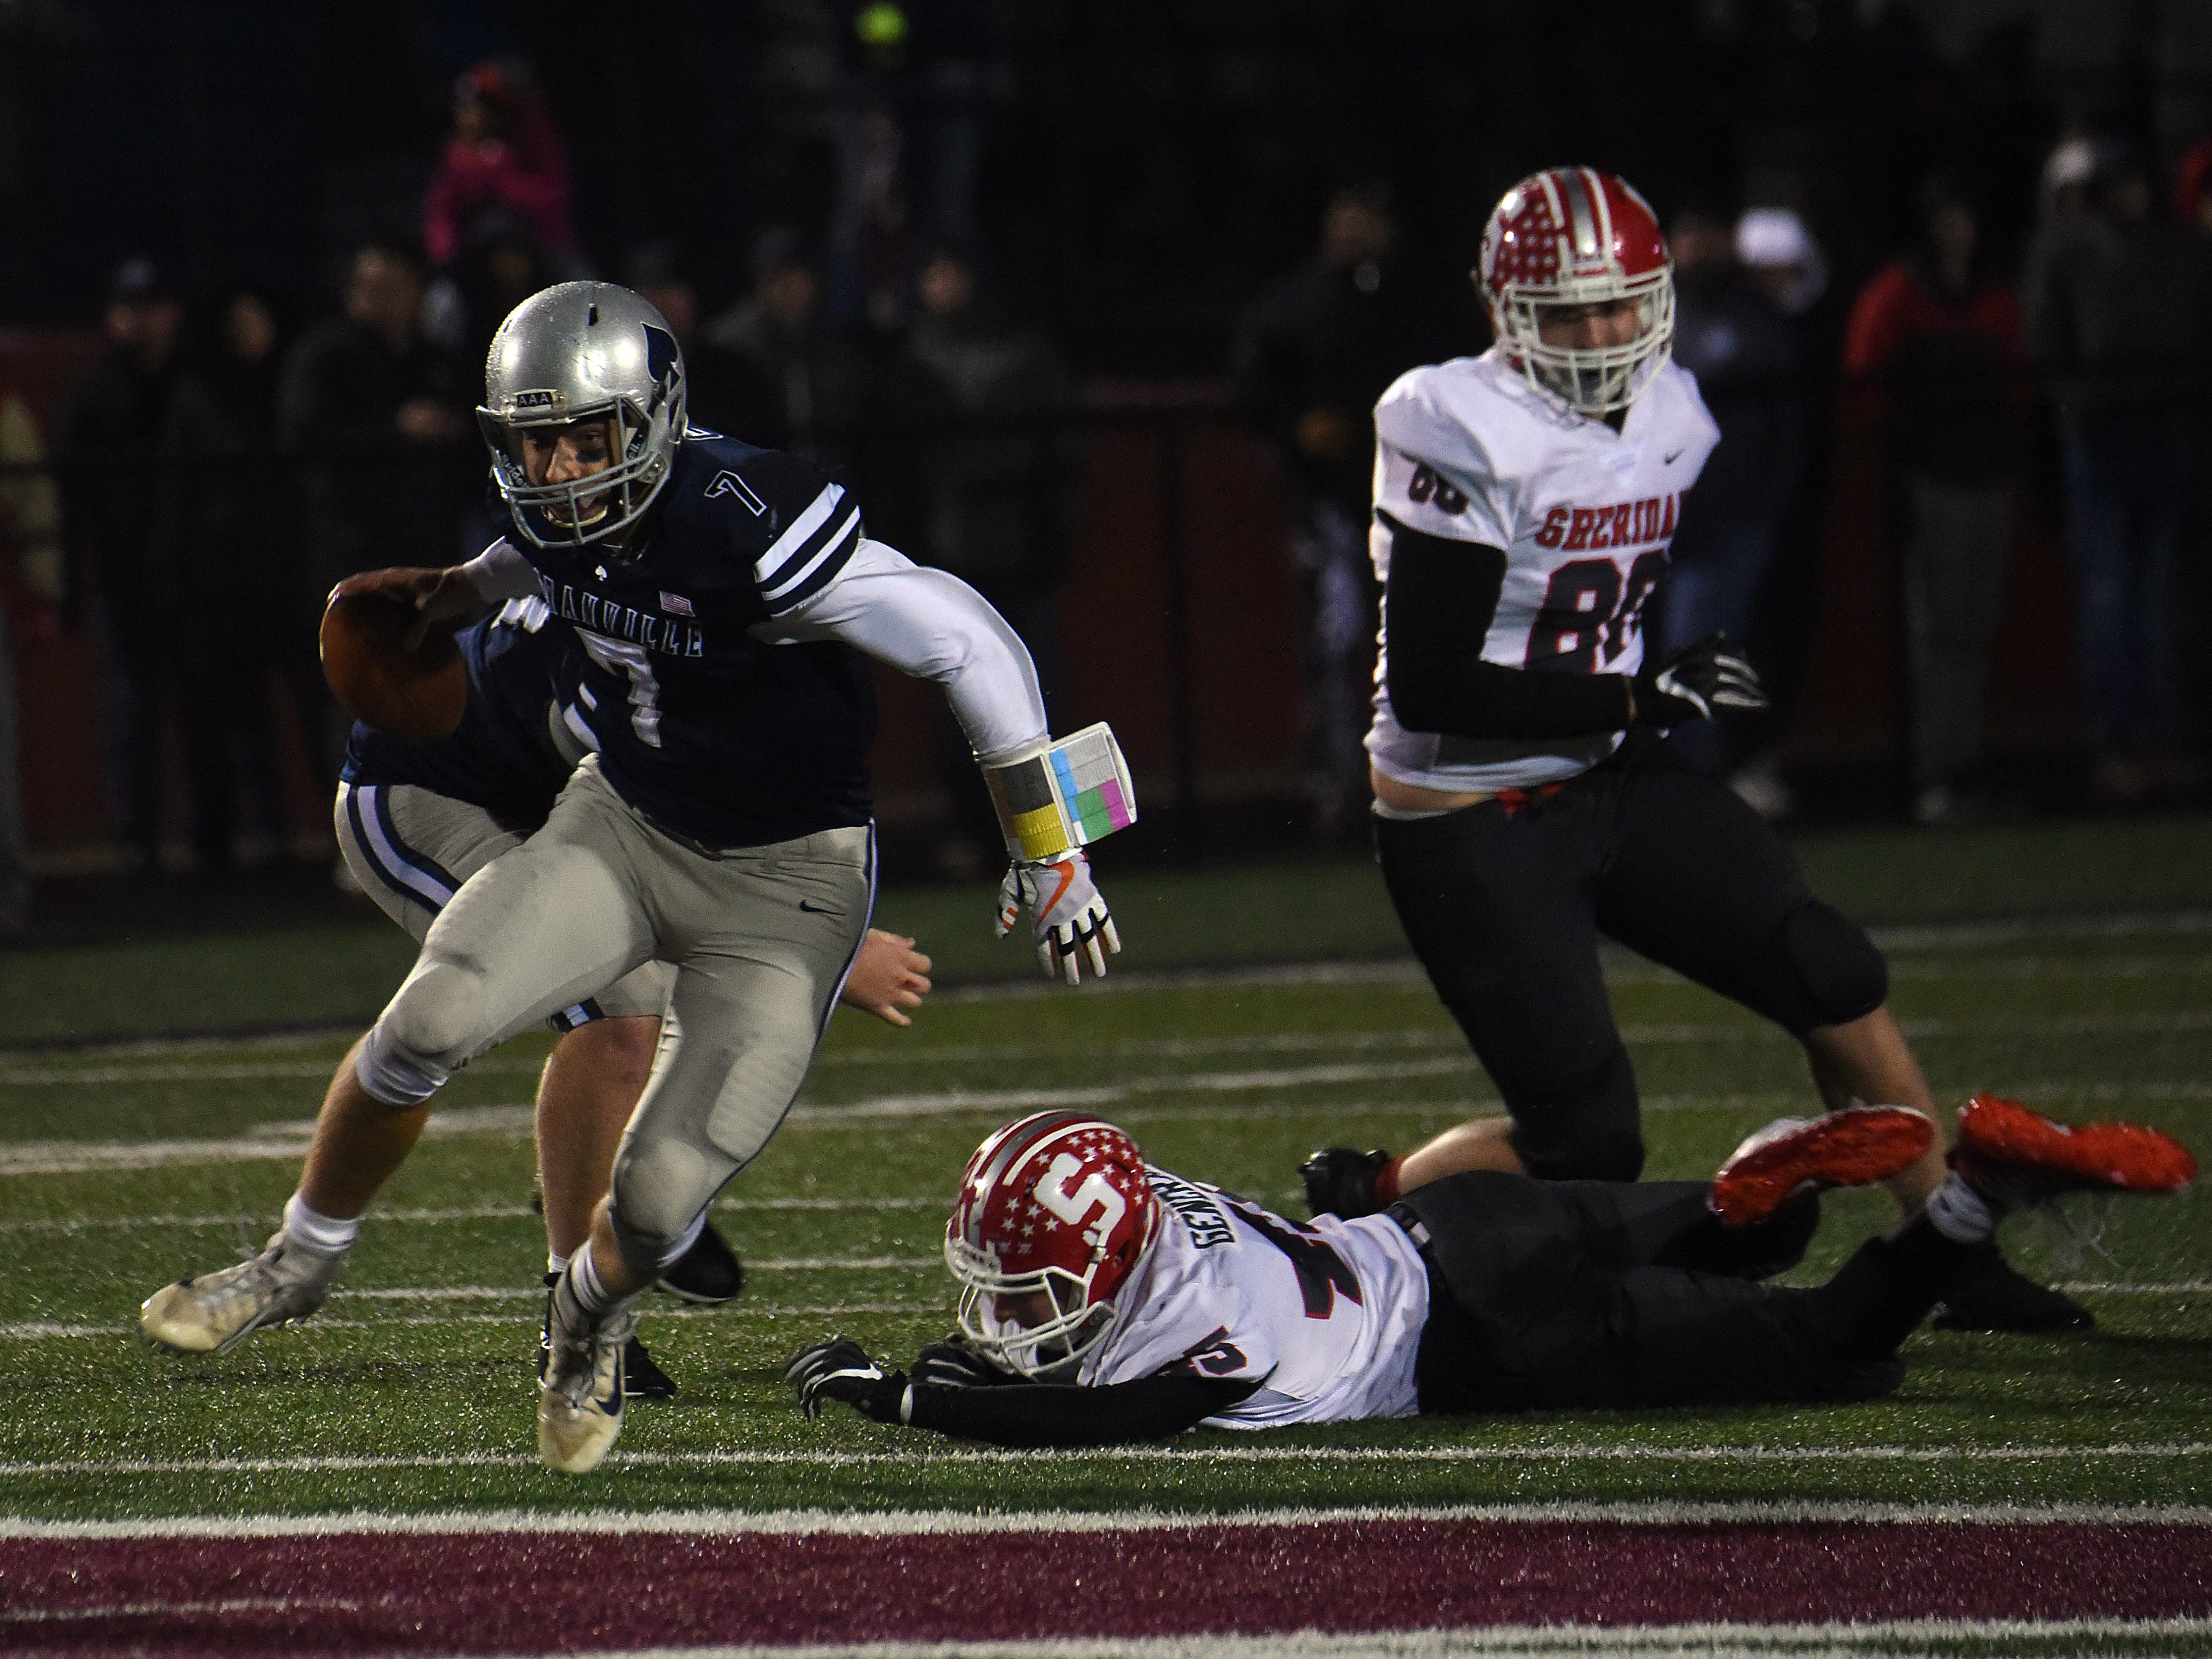 Granville senior quarterback Cameron Crouch scrambles past Sheridan junior defender Alec Ogle. The Generals defeated the Blue Aces 20-7 in a Division III, Region 11 semifinal on Friday, Nov. 9, 2018 at White Field in Newark.